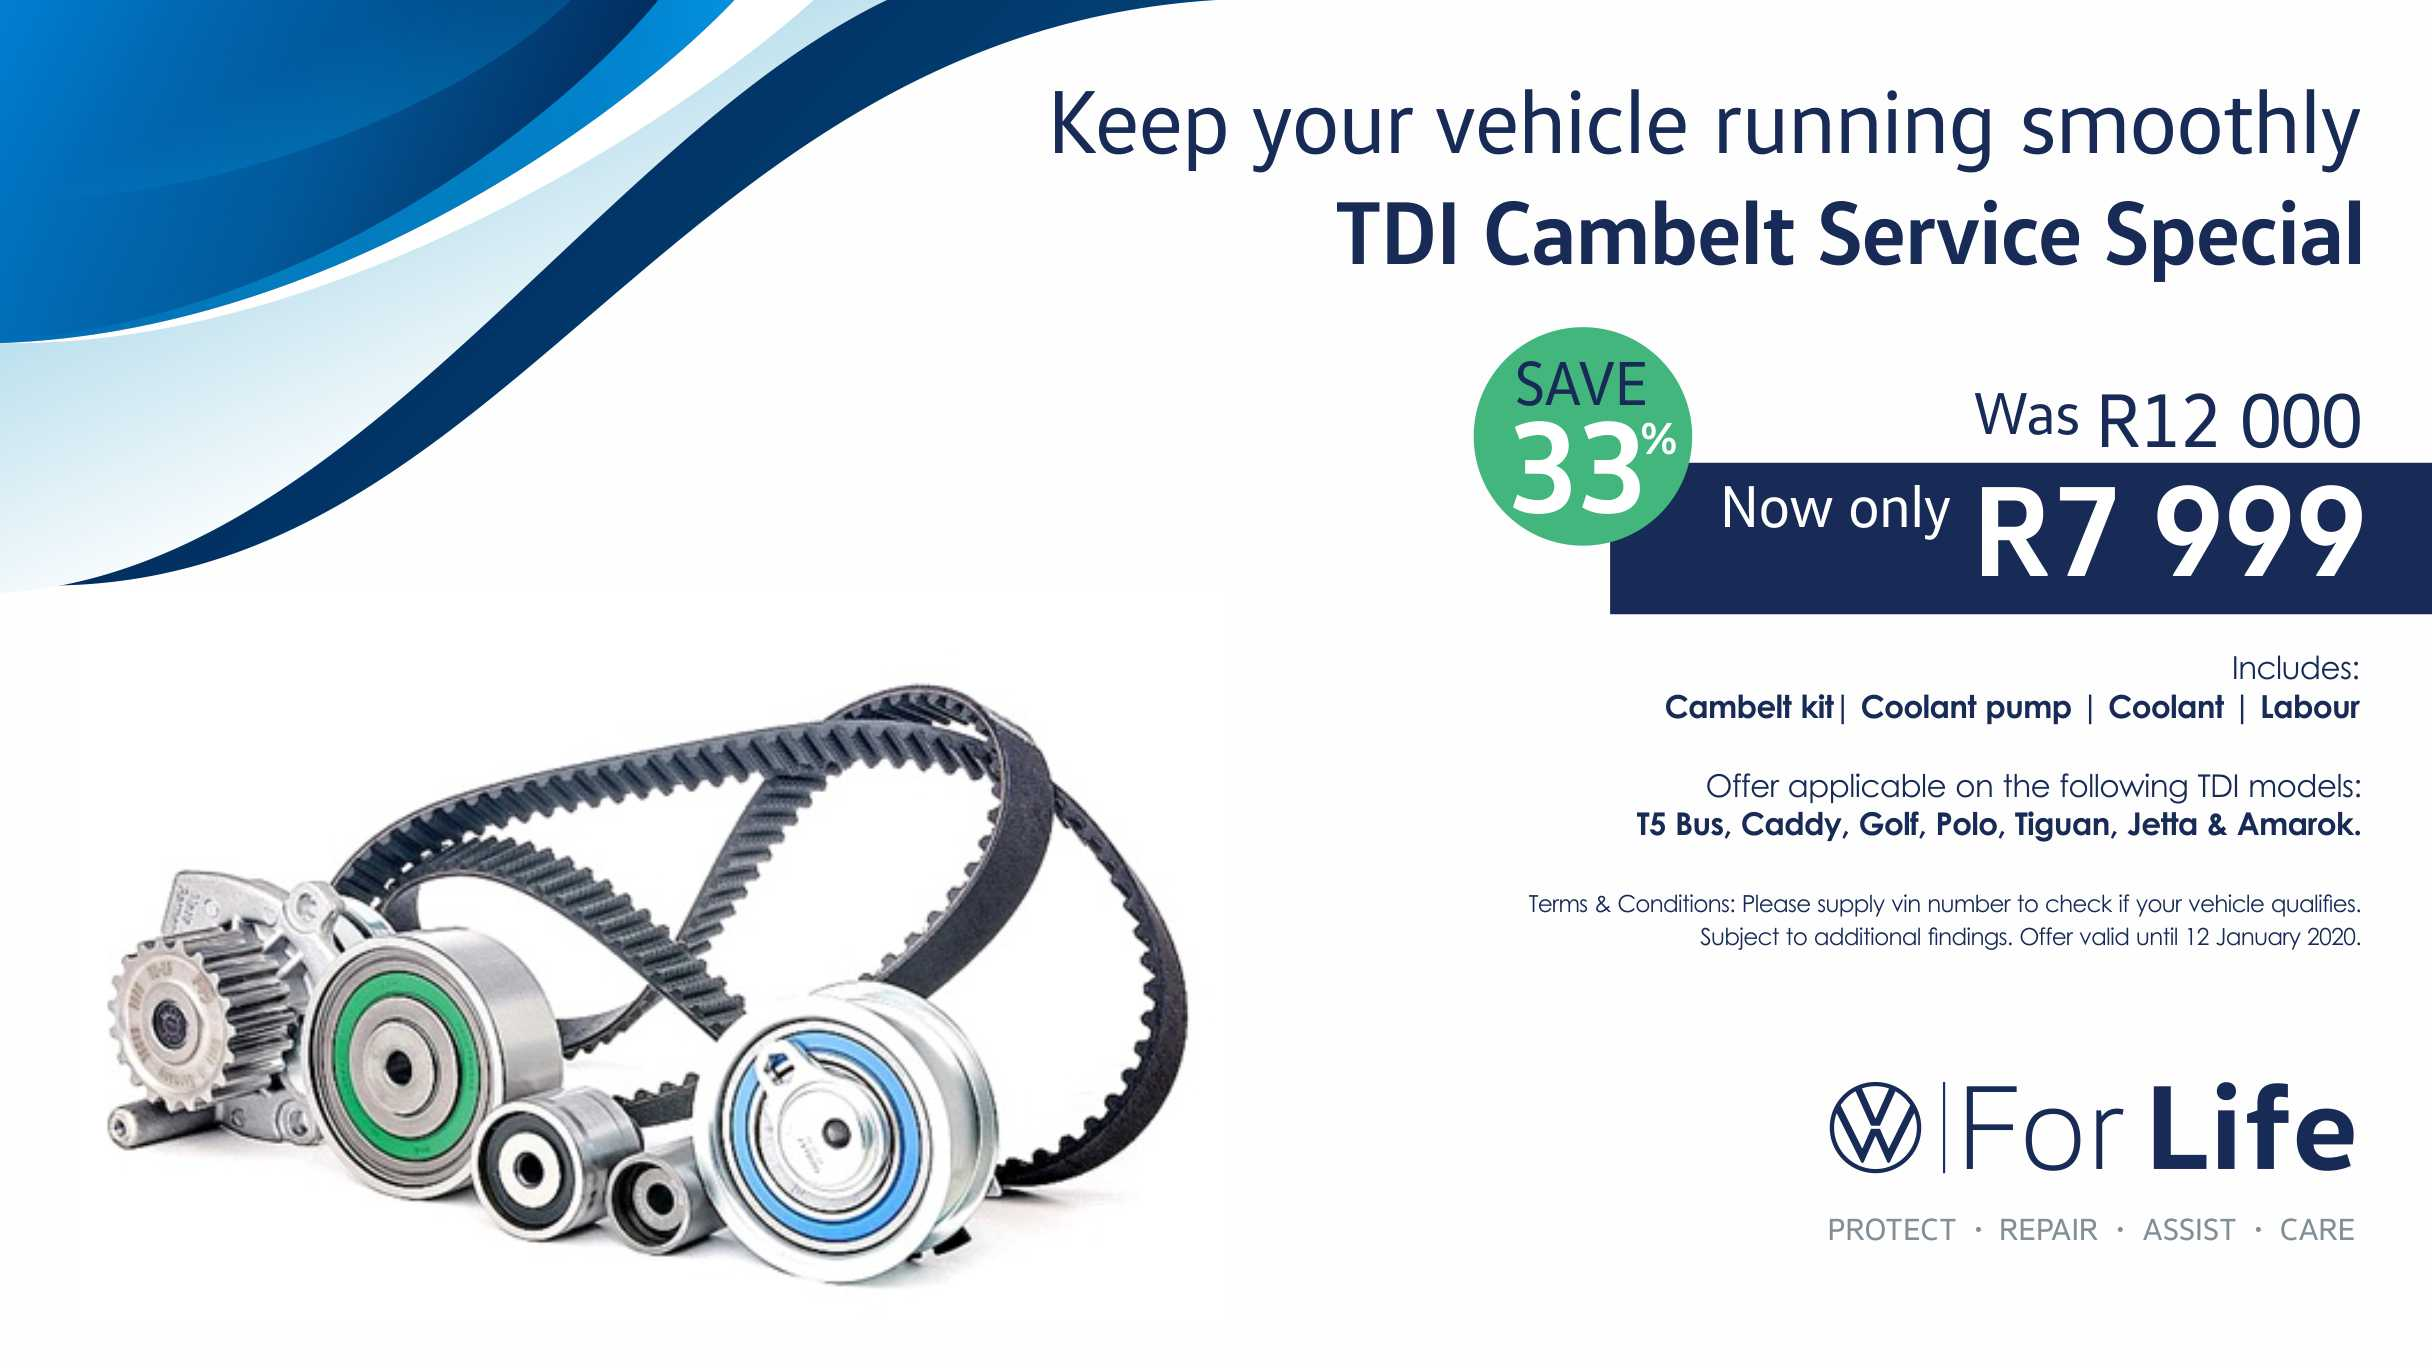 Cambelt service special at Barons Tokai